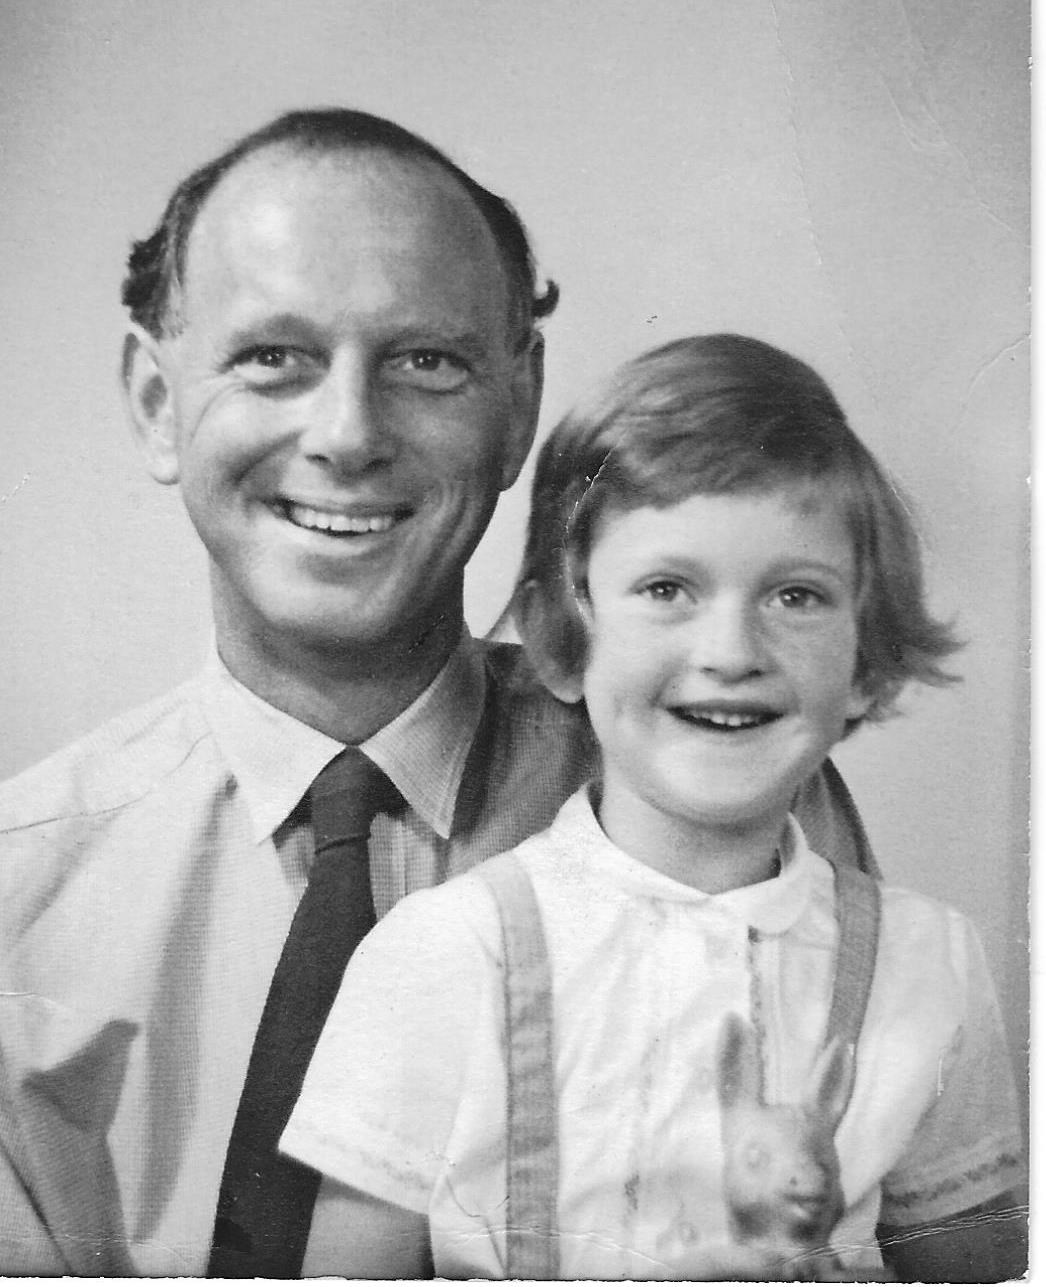 Sara Burdon as child with her father, Peter